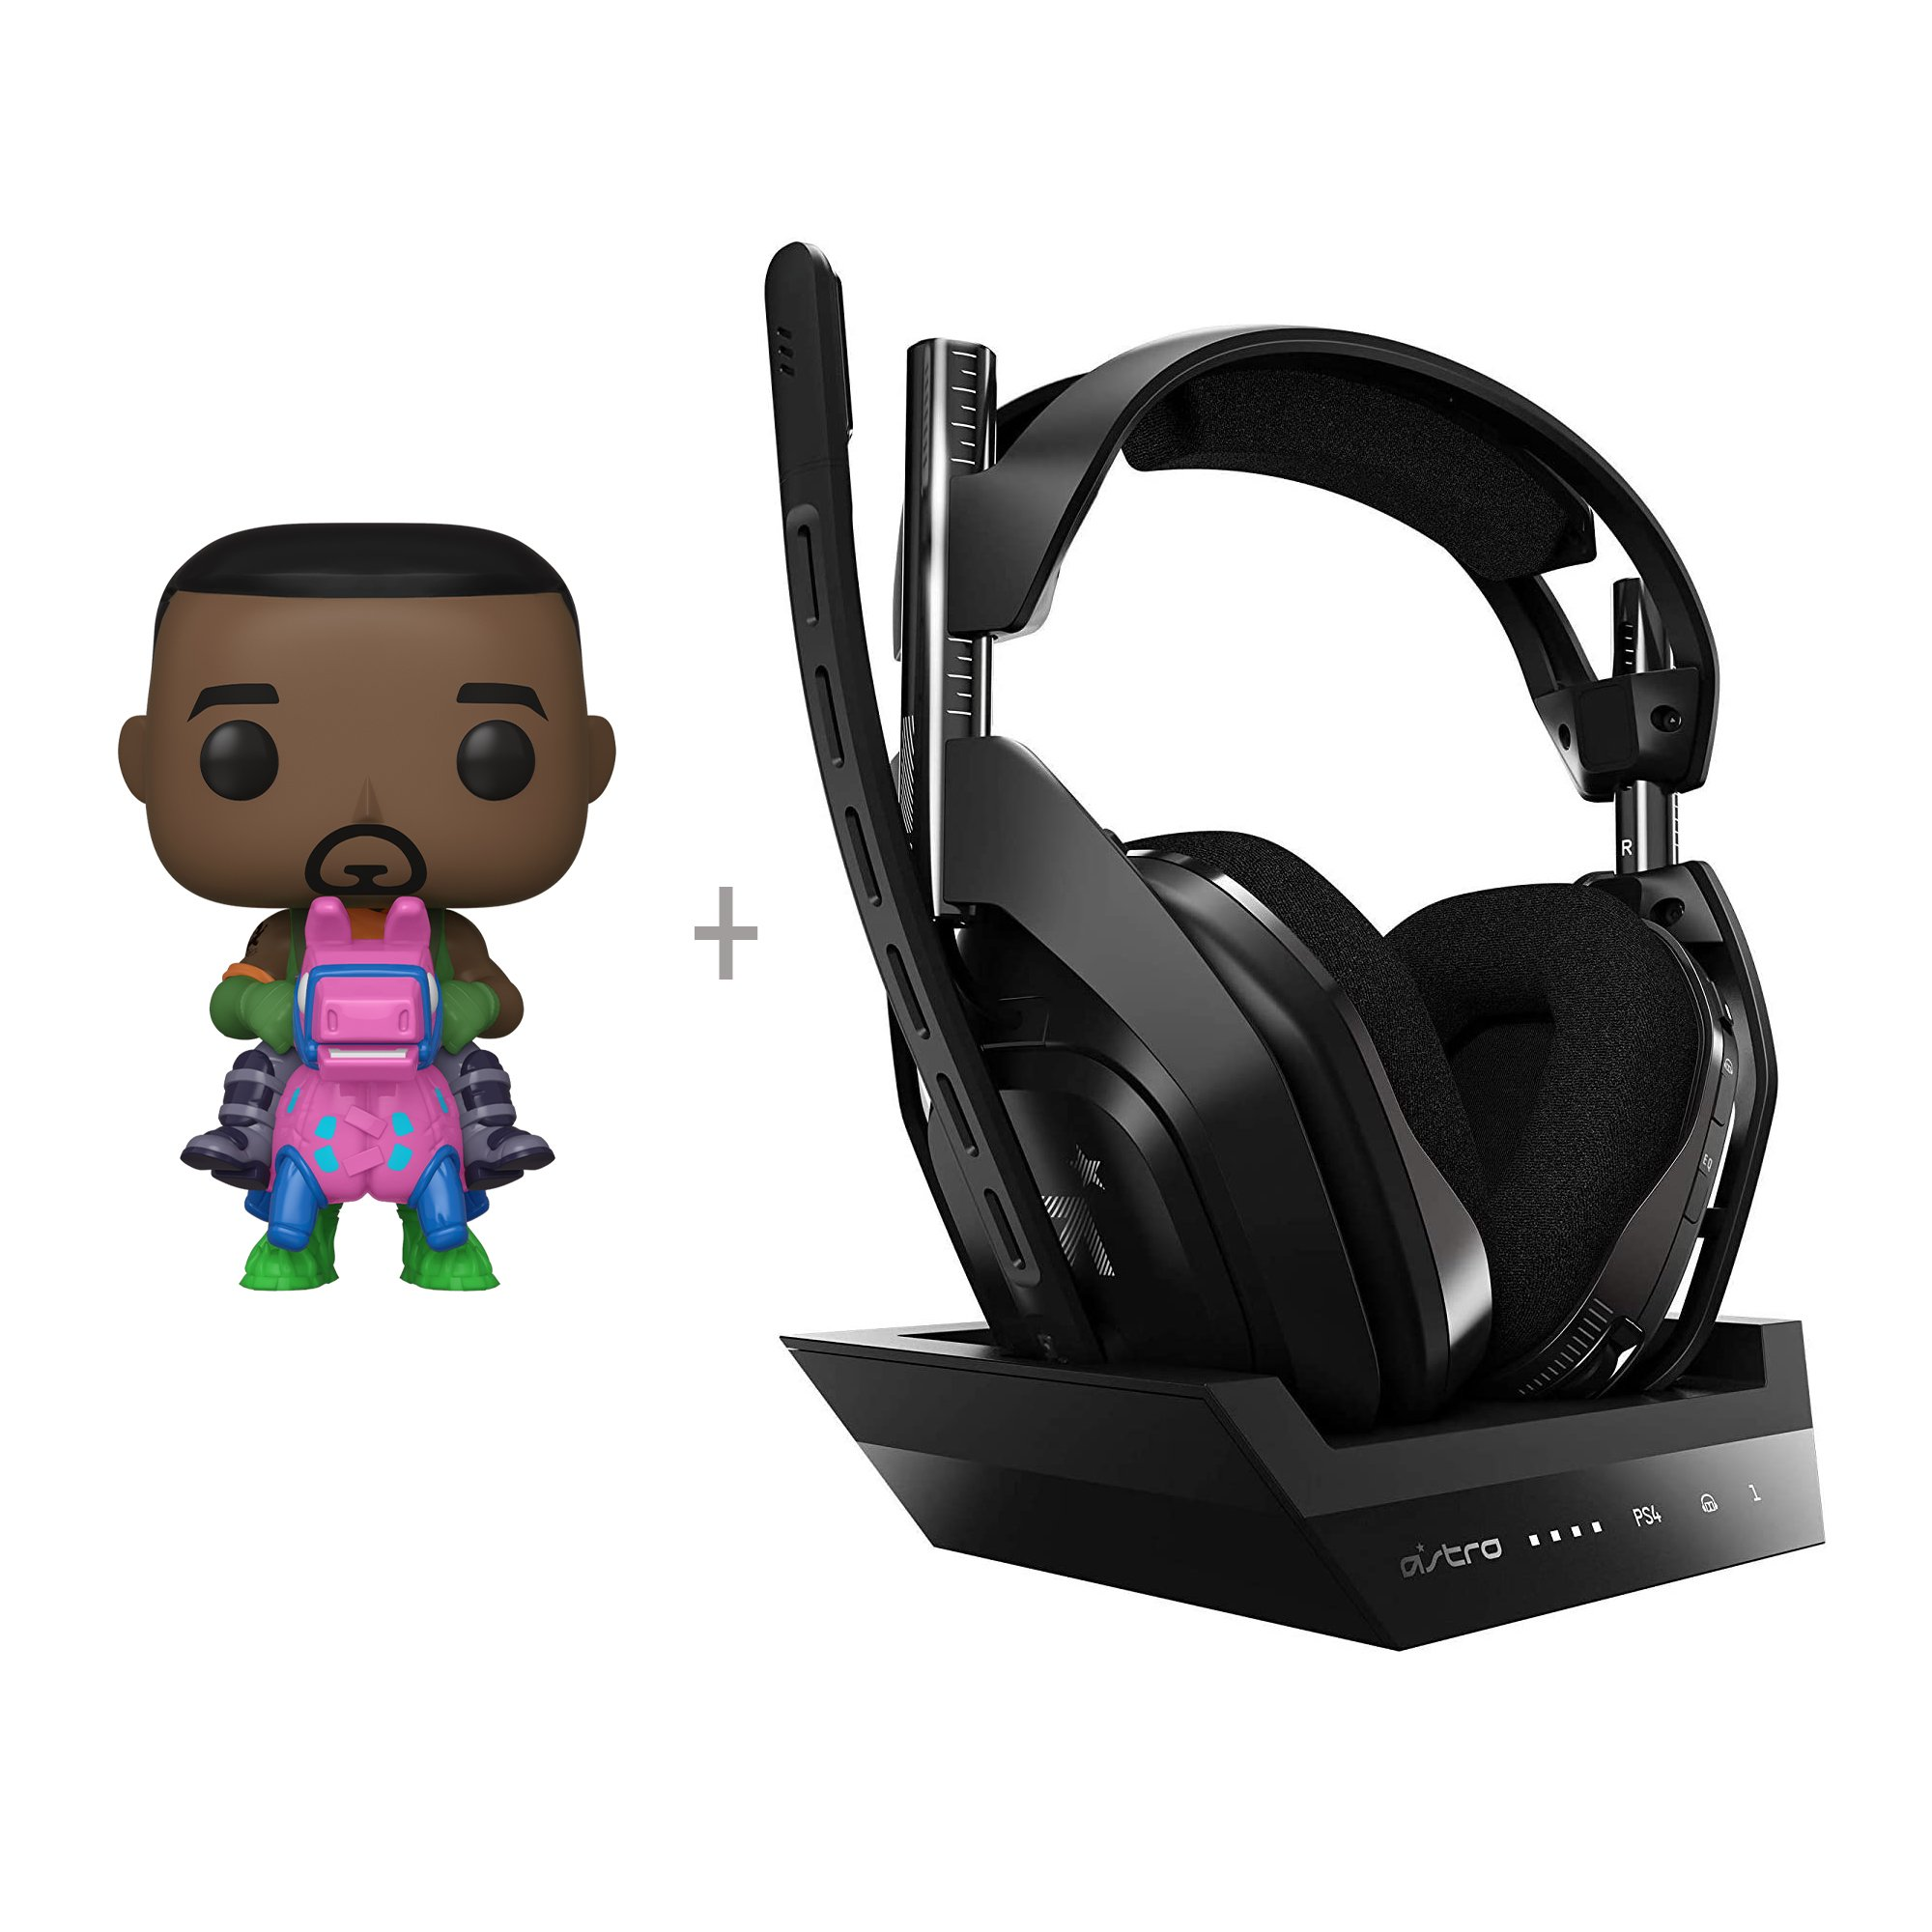 Astro - A50 Wireless + Base Station for PlayStation® 4/PC + Funko! POP - Games: Fortnite - Giddy Up (44732) - Bundle